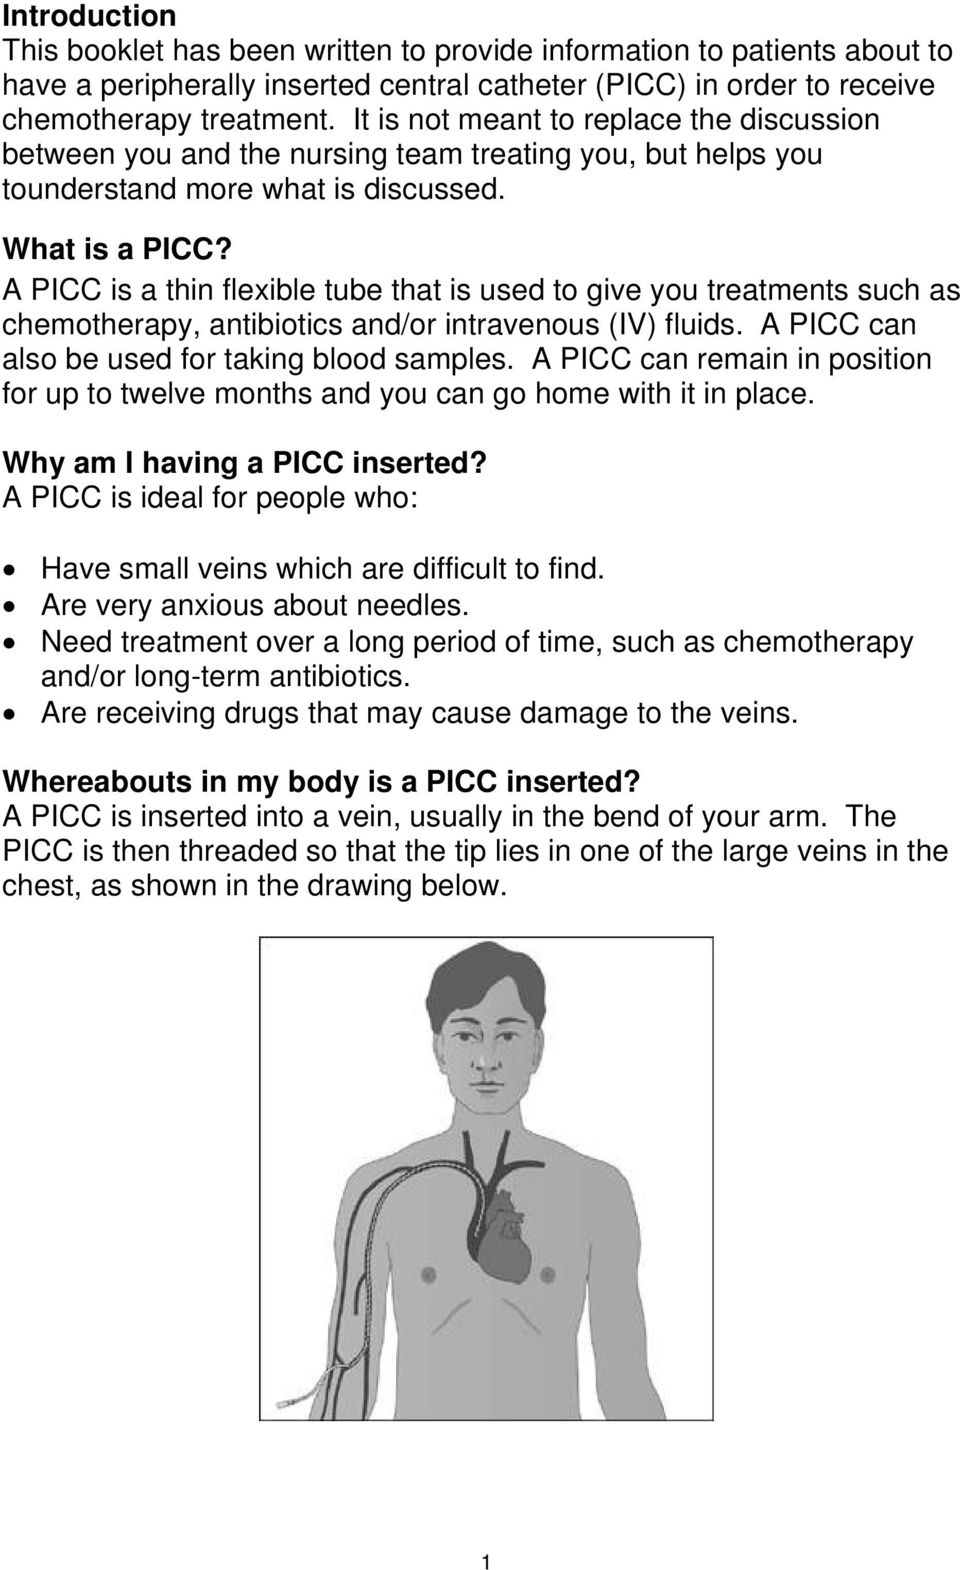 A PICC is a thin flexible tube that is used to give you treatments such as chemotherapy, antibiotics and/or intravenous (IV) fluids. A PICC can also be used for taking blood samples.